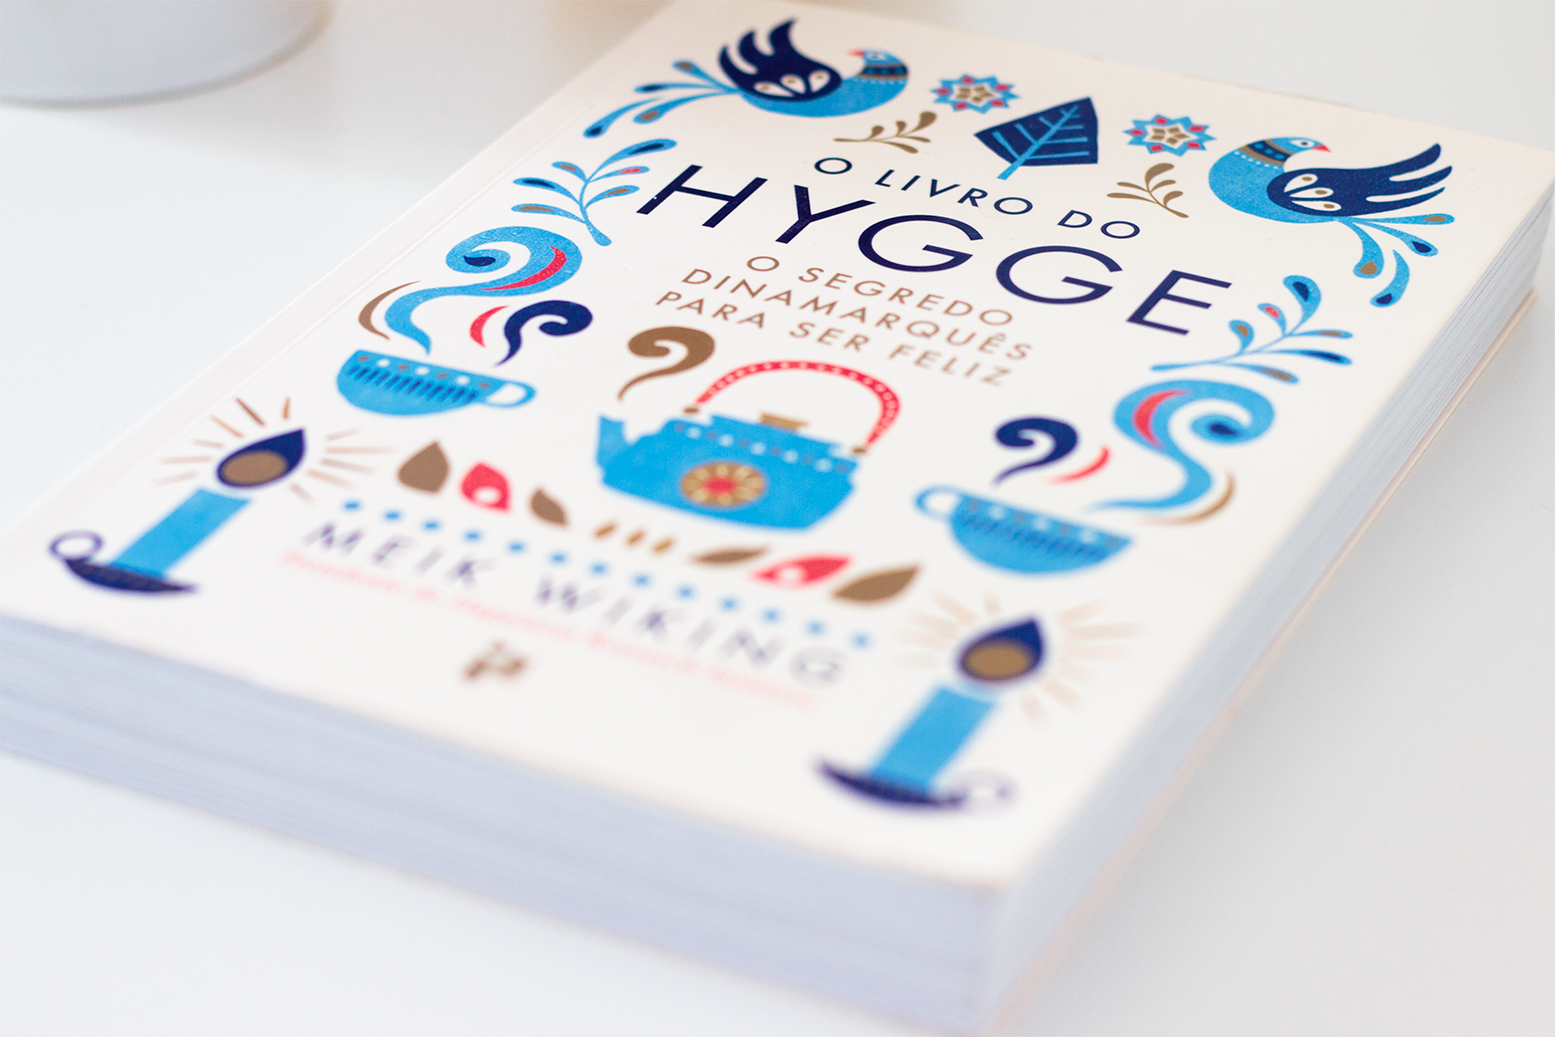 Review O Livro do Hygge